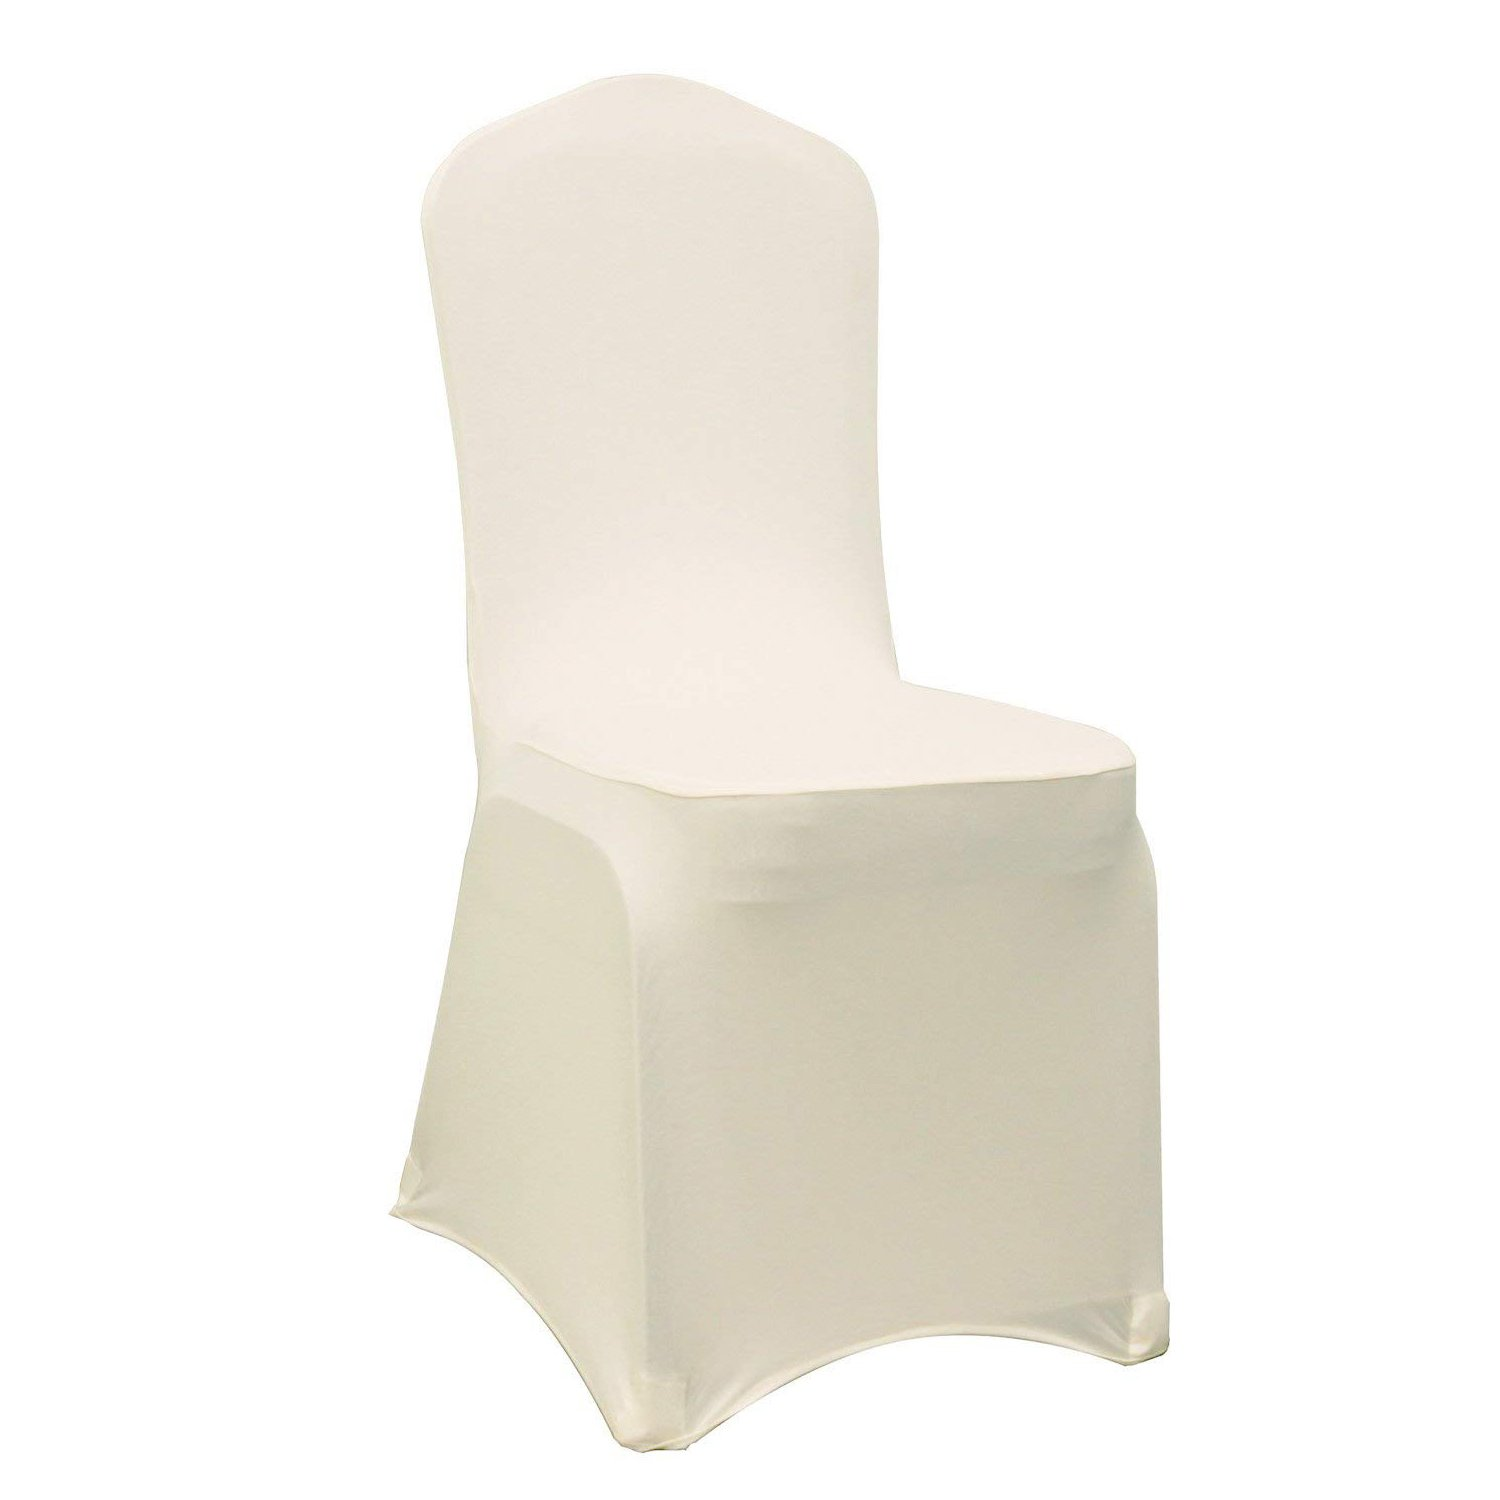 Spandex Chair Cover Premium (Ivory) Trimming Shop